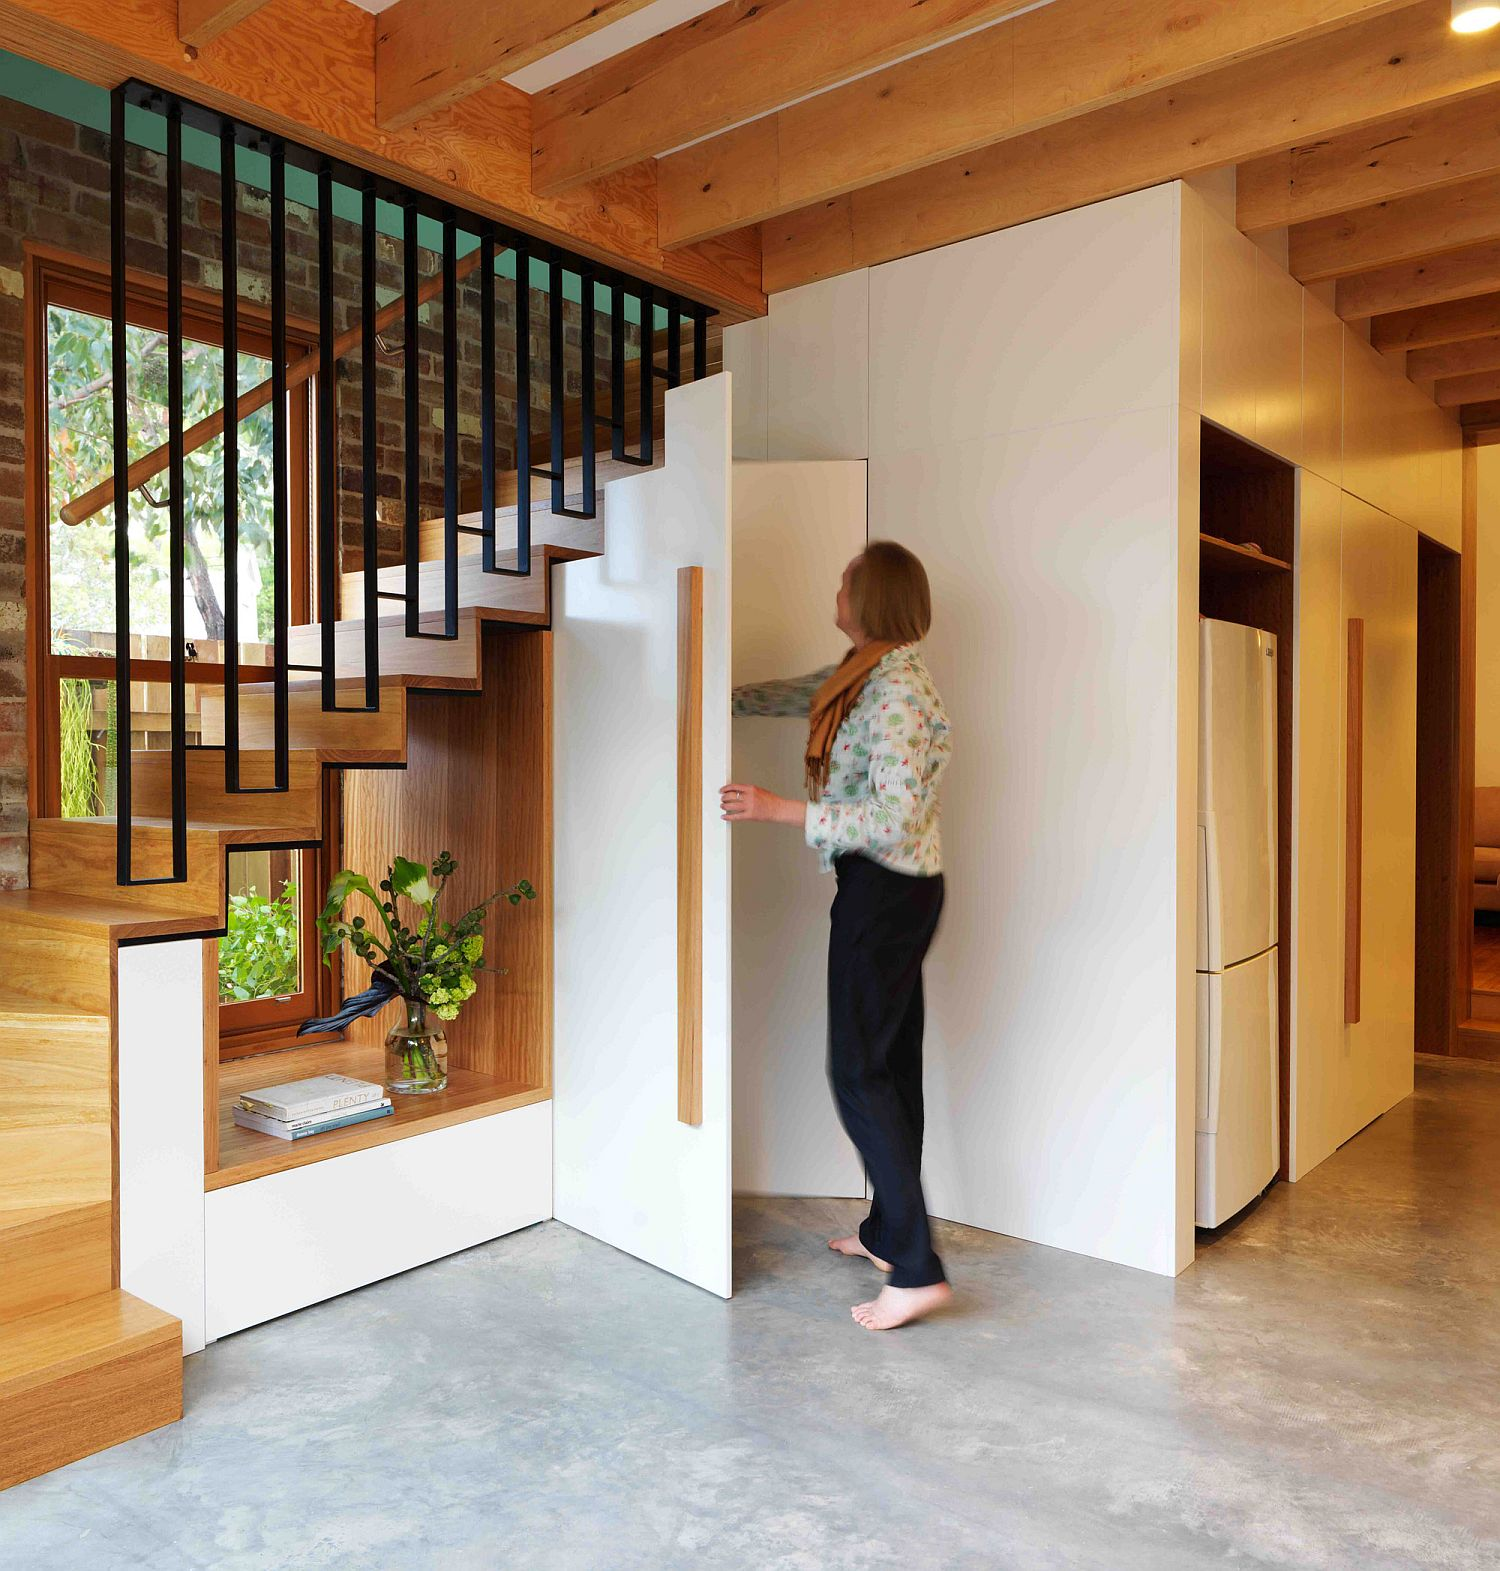 Making use of the space under the staircase in more ways than one